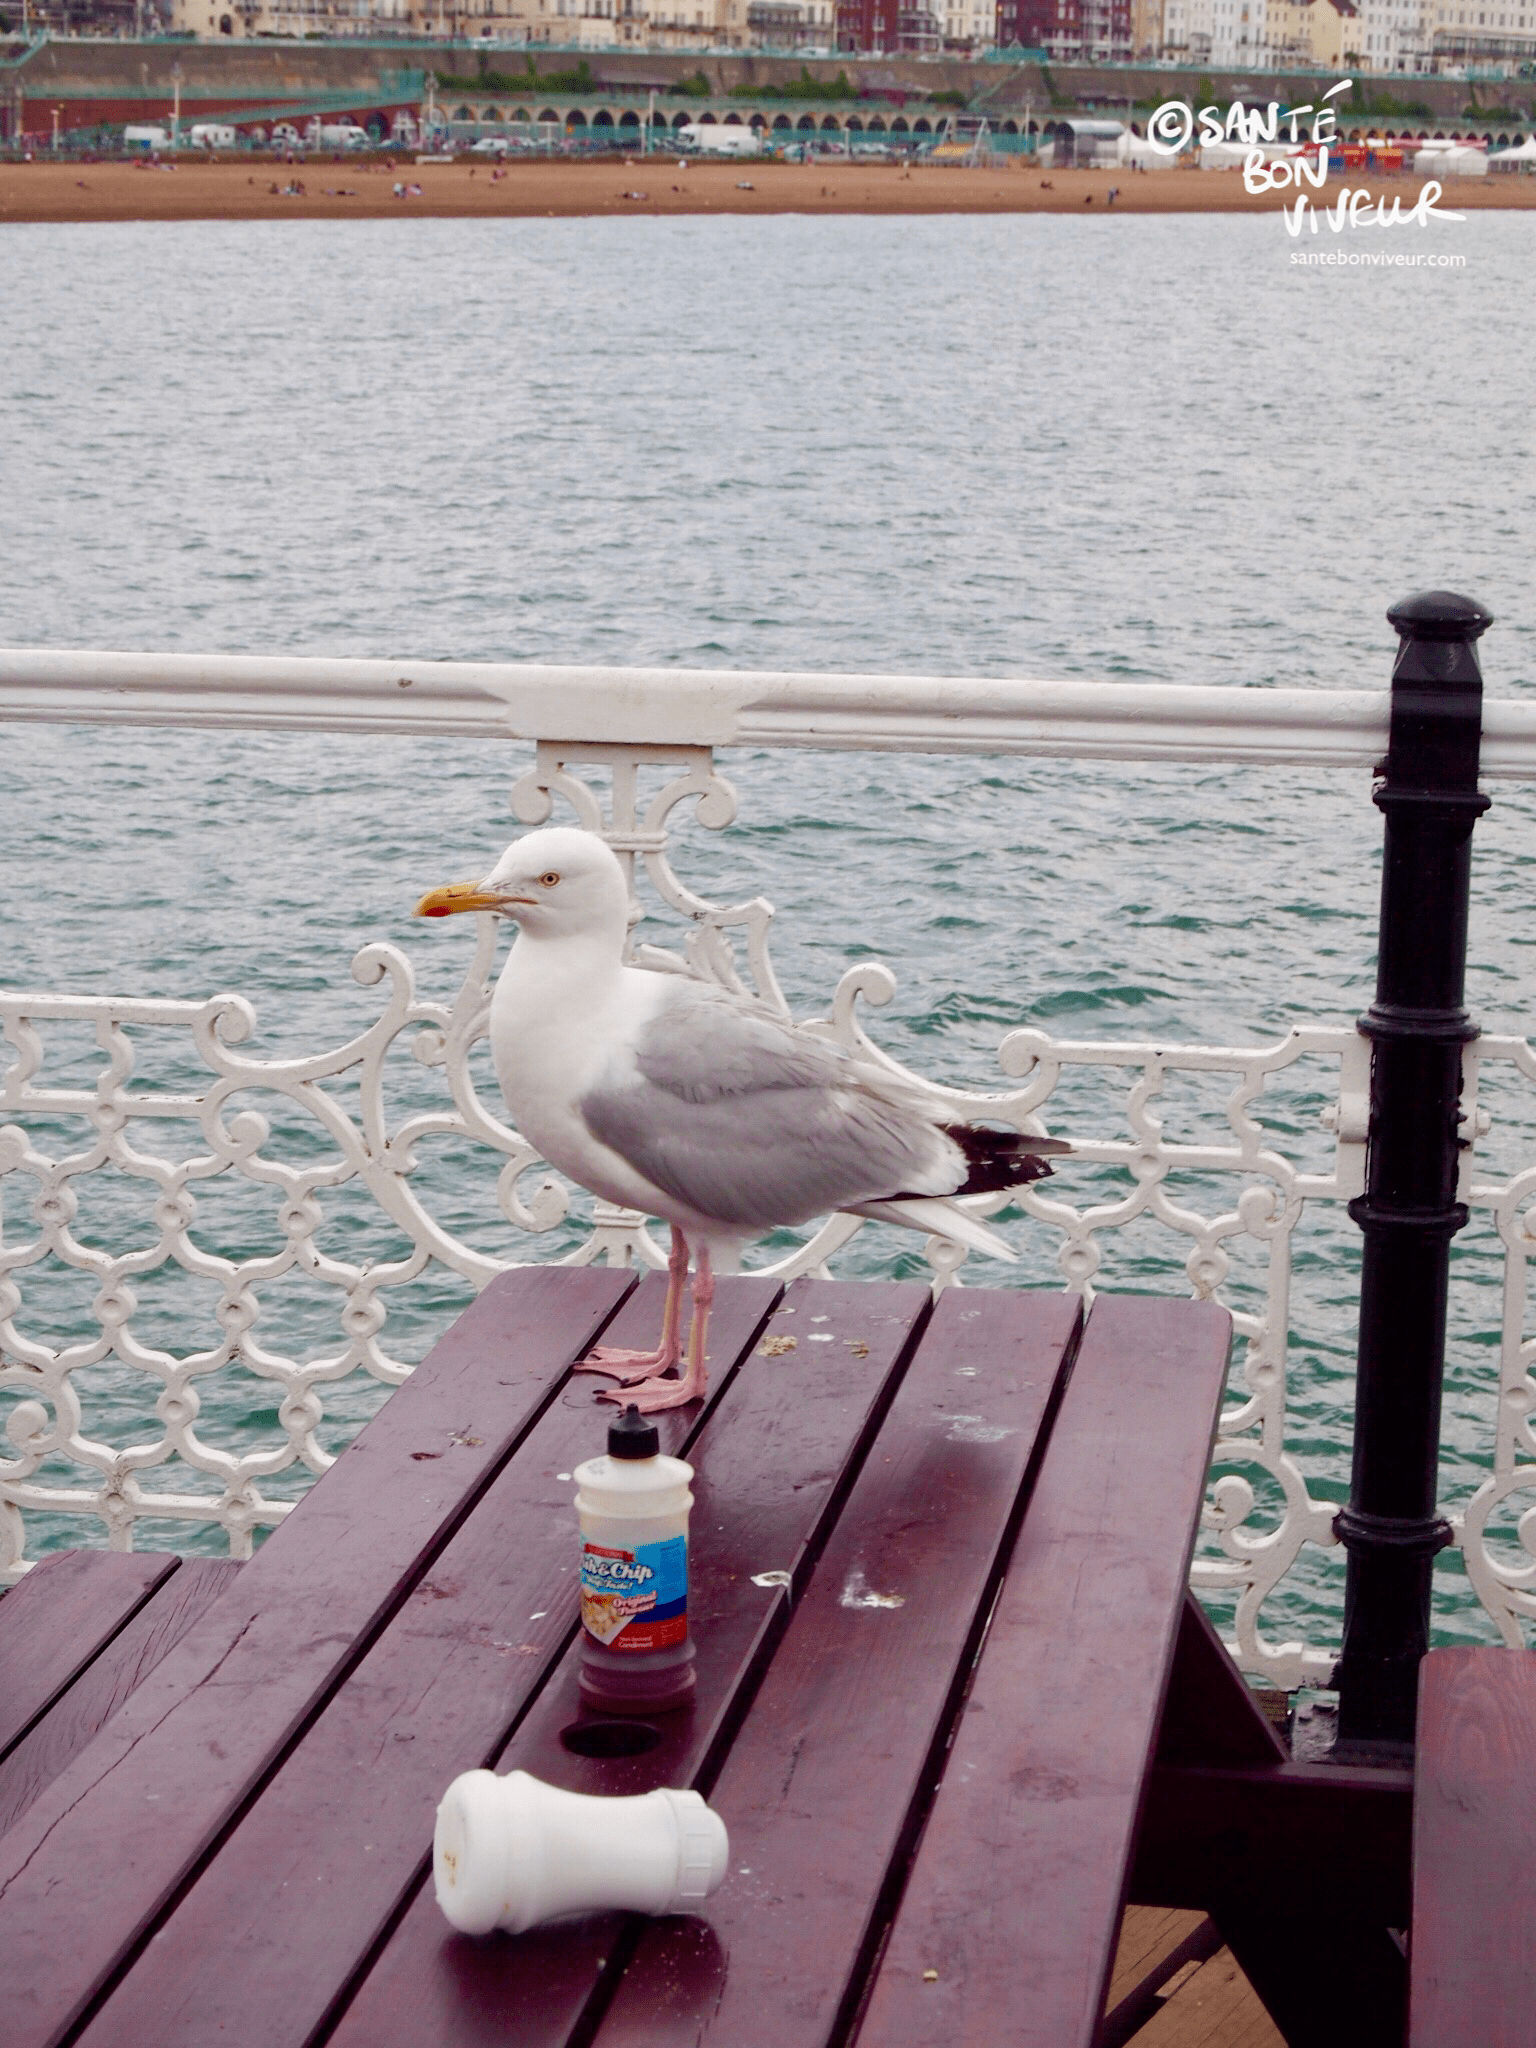 This seagull means fish & chips business....